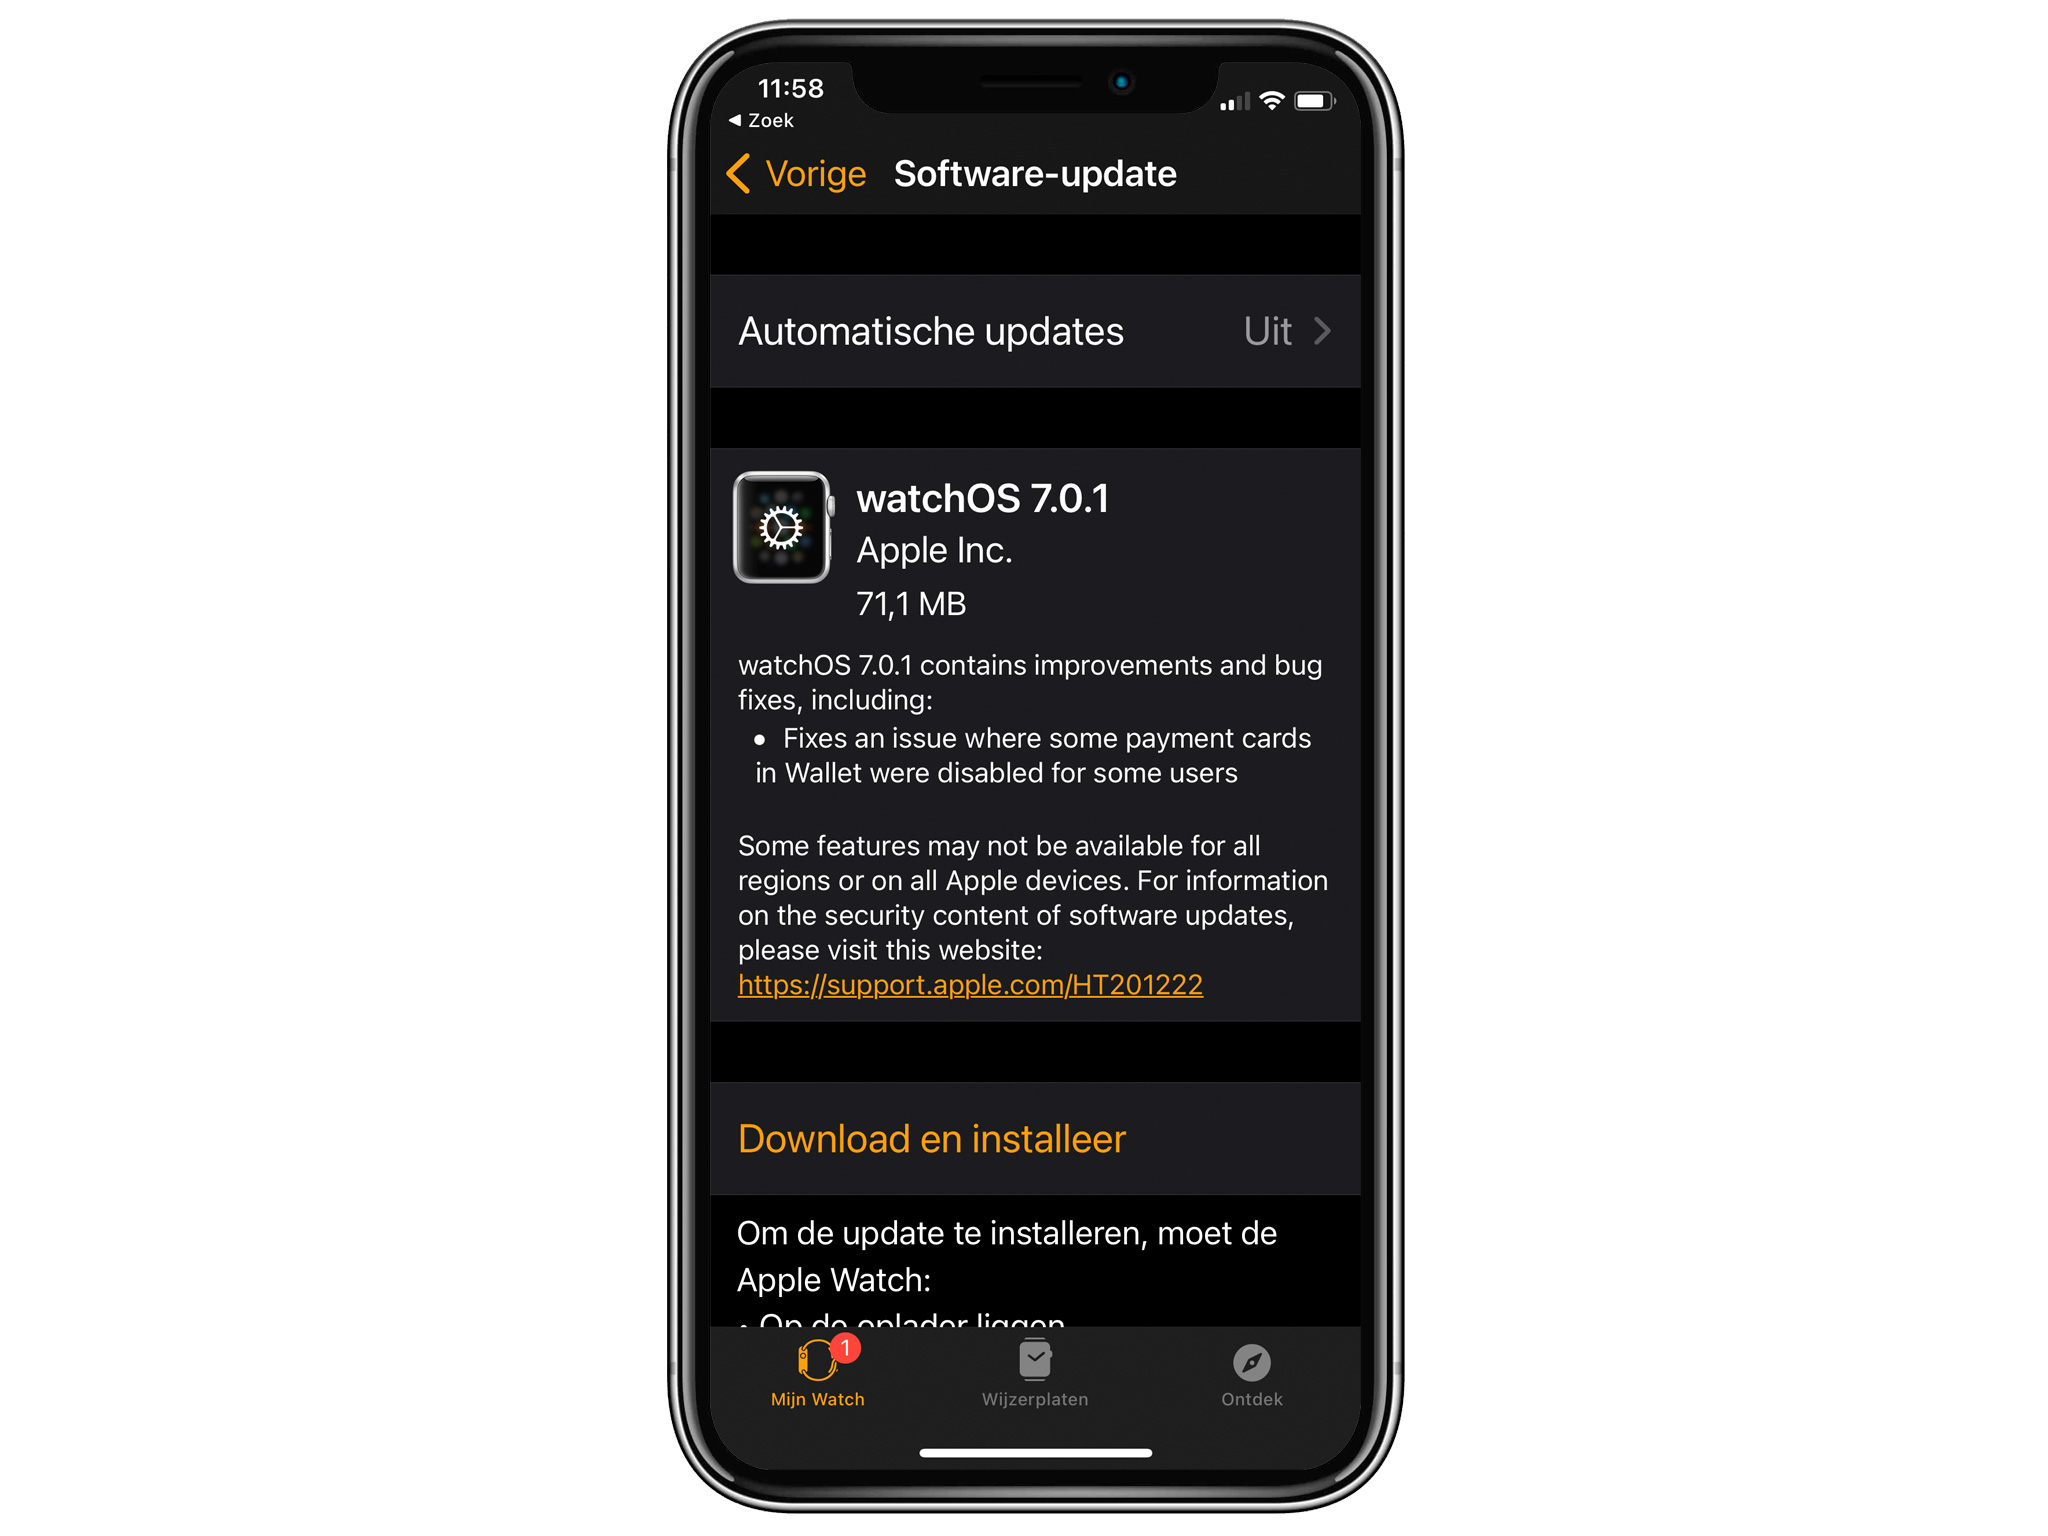 https://www.macfreak.nl/modules/news/images/zArt.watchOS7.0.1ReleaseNotes.jpg